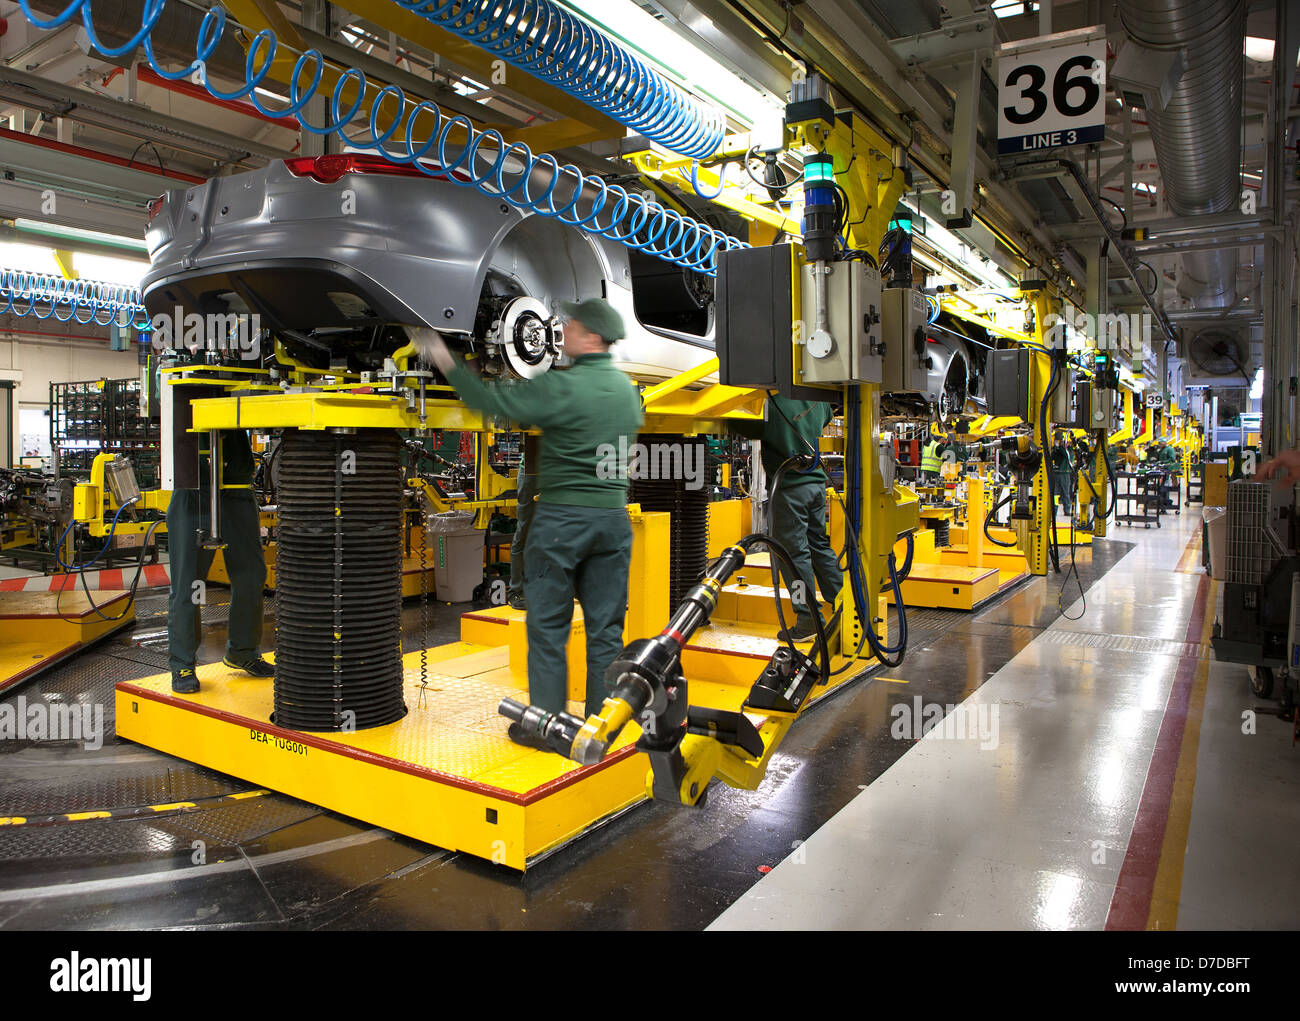 Inside Jaguar Car Plant in Castle Bromwich, Birmingham on the production line of the new F-Type sports car. March - Stock Image